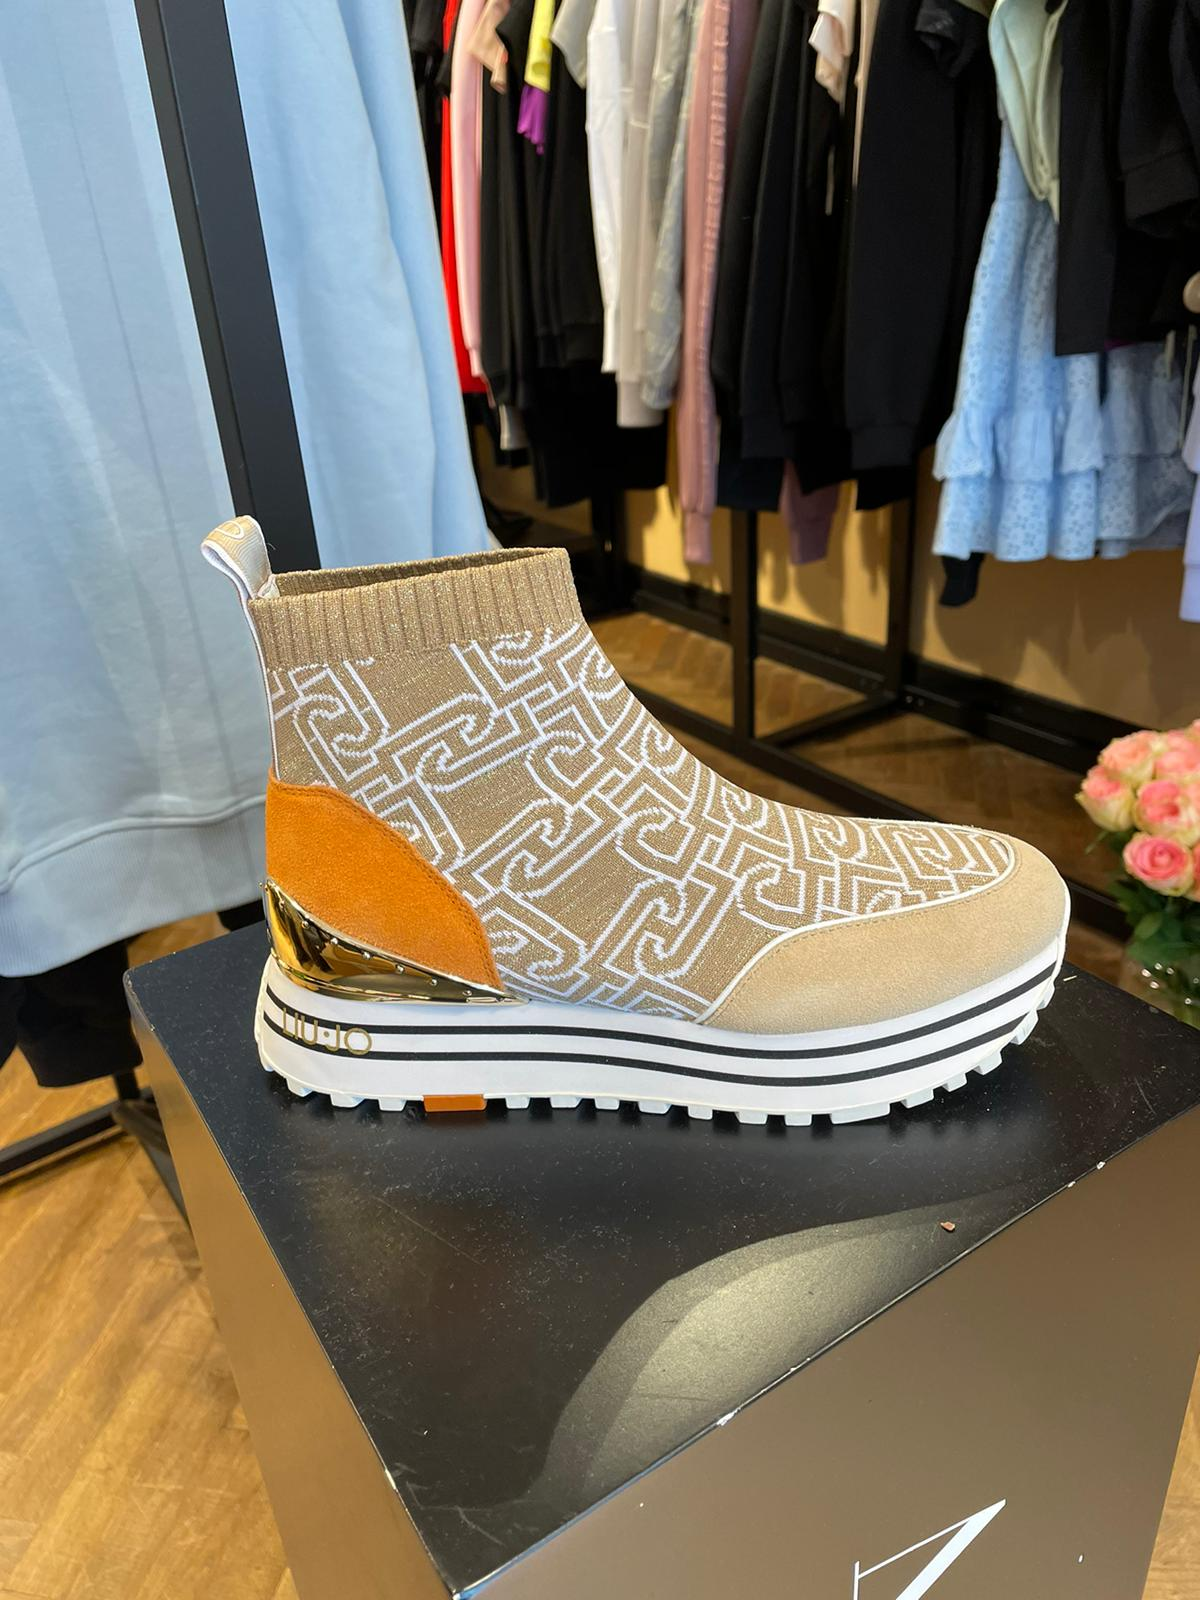 LUIJO Sock sneakers with logo New